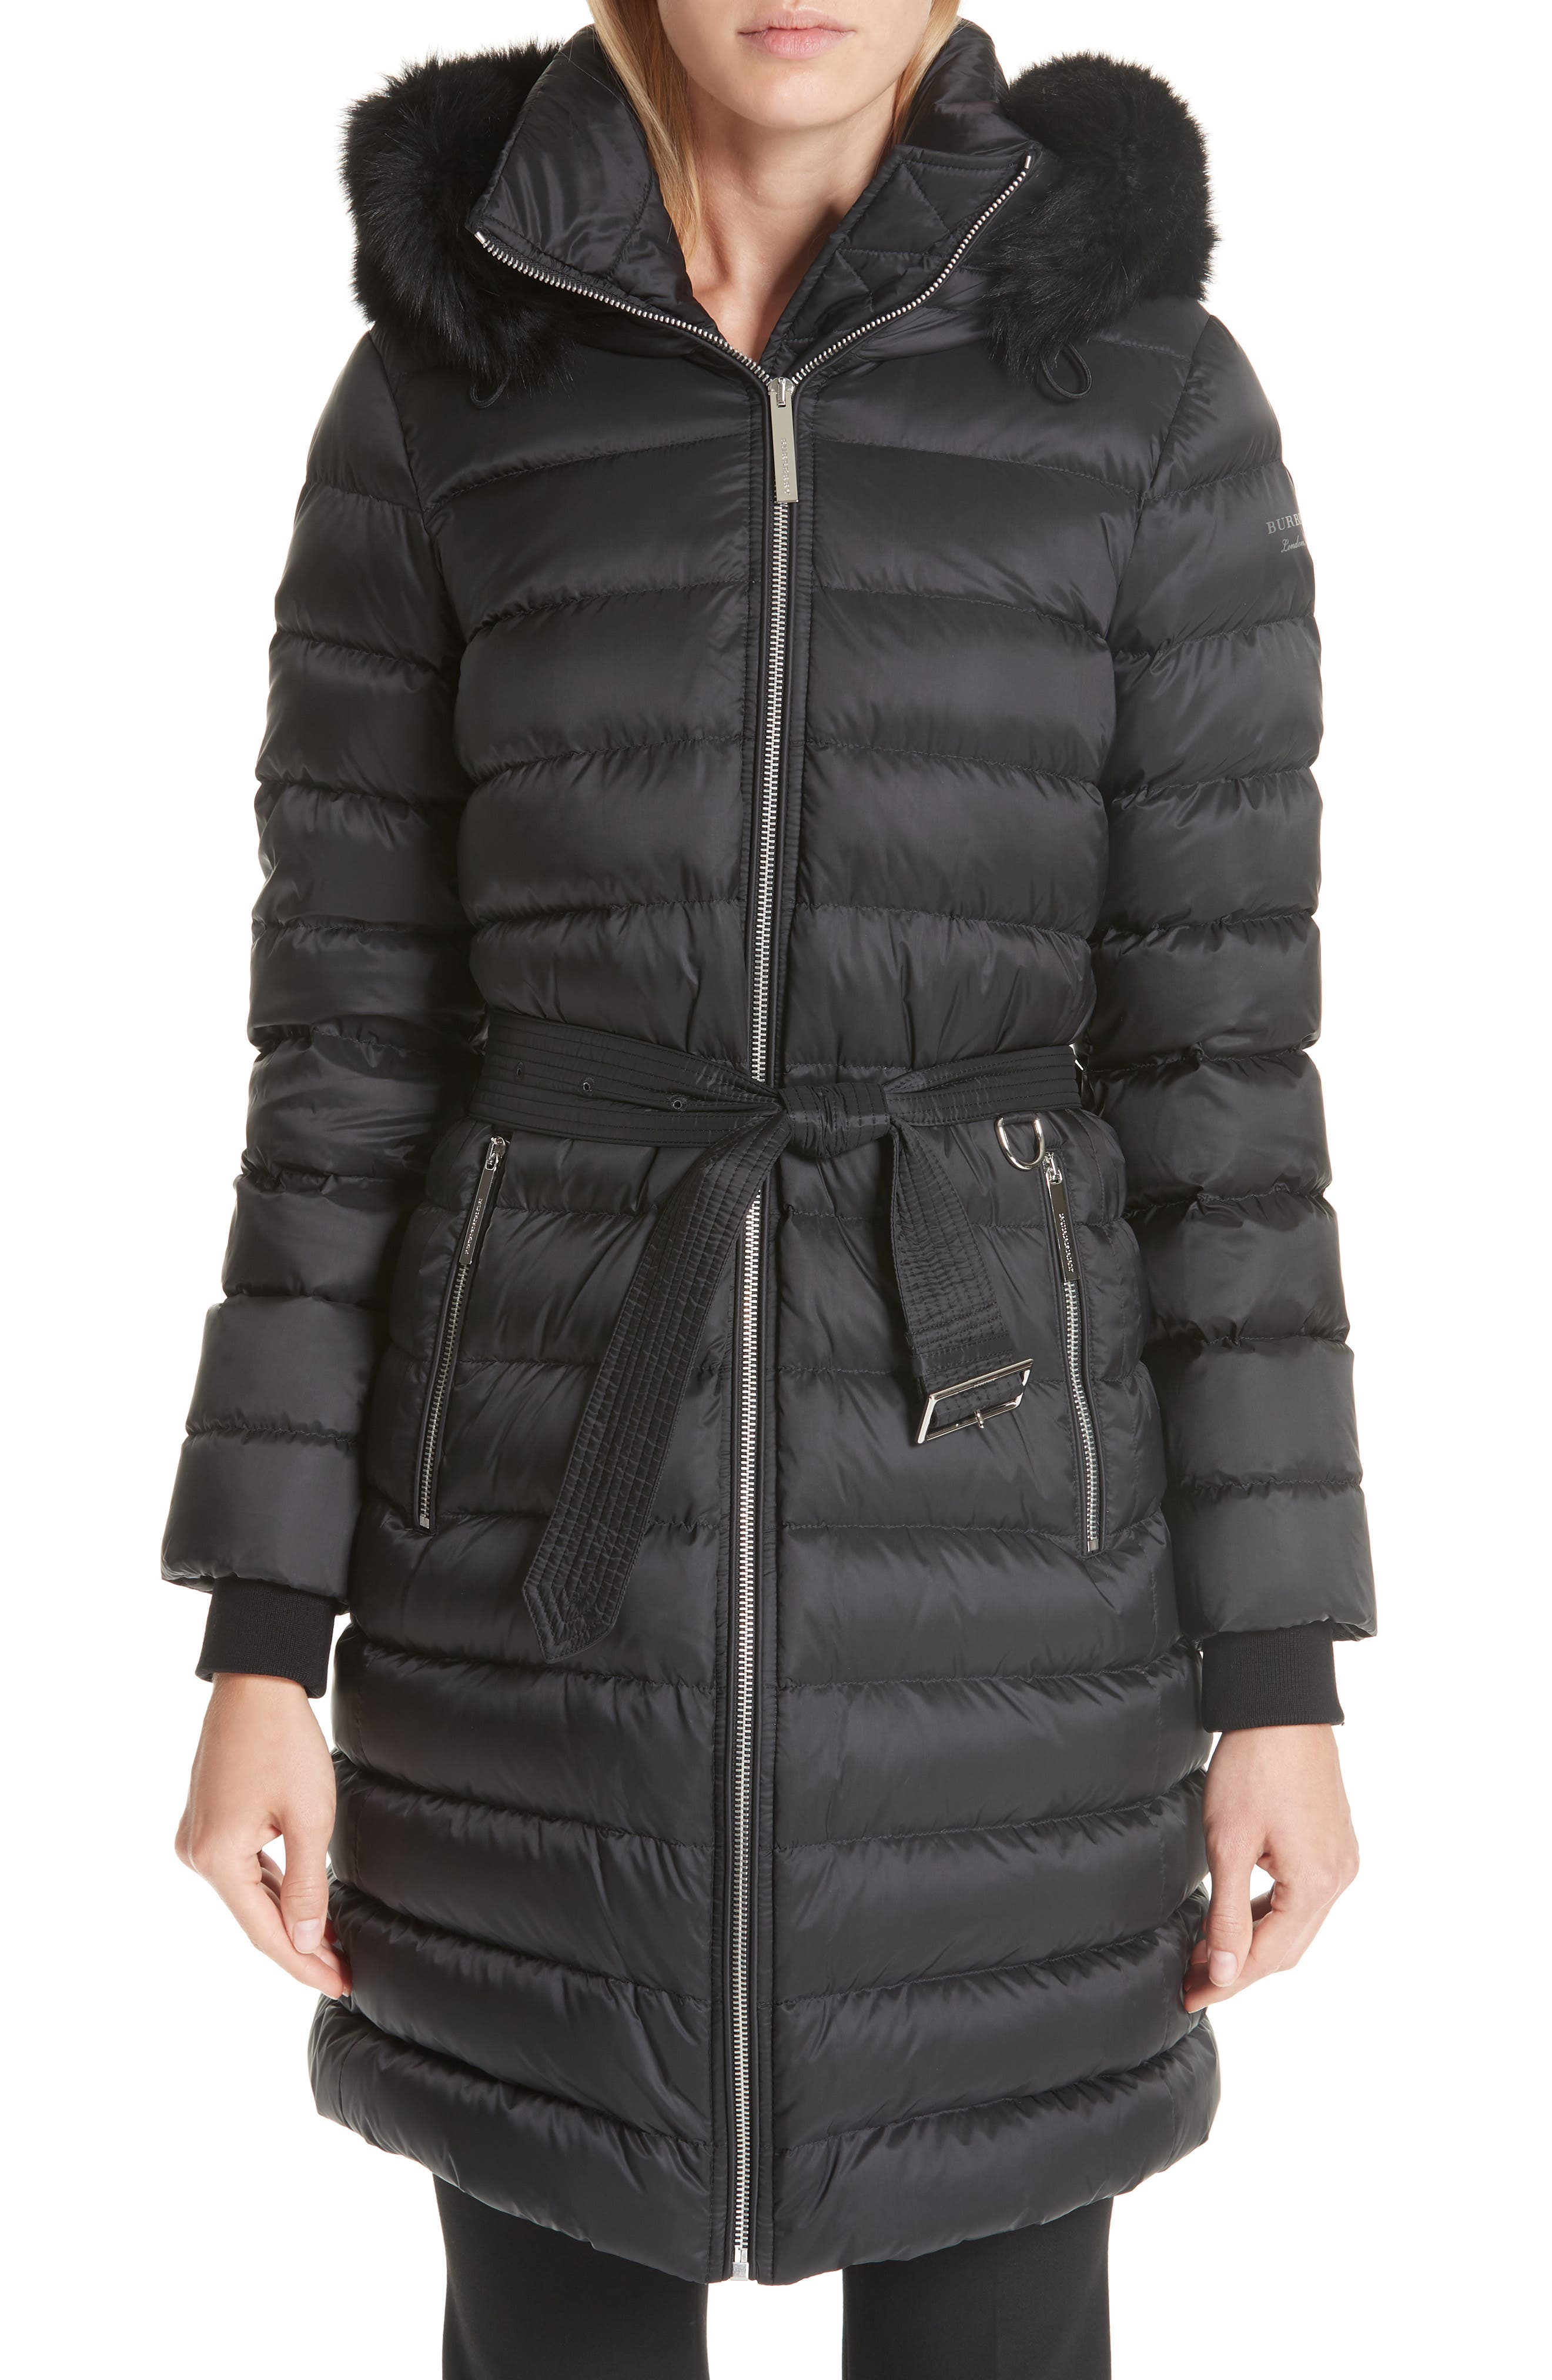 Burberry Limefield Genuine Shearling Hood Puffer Coat, Black